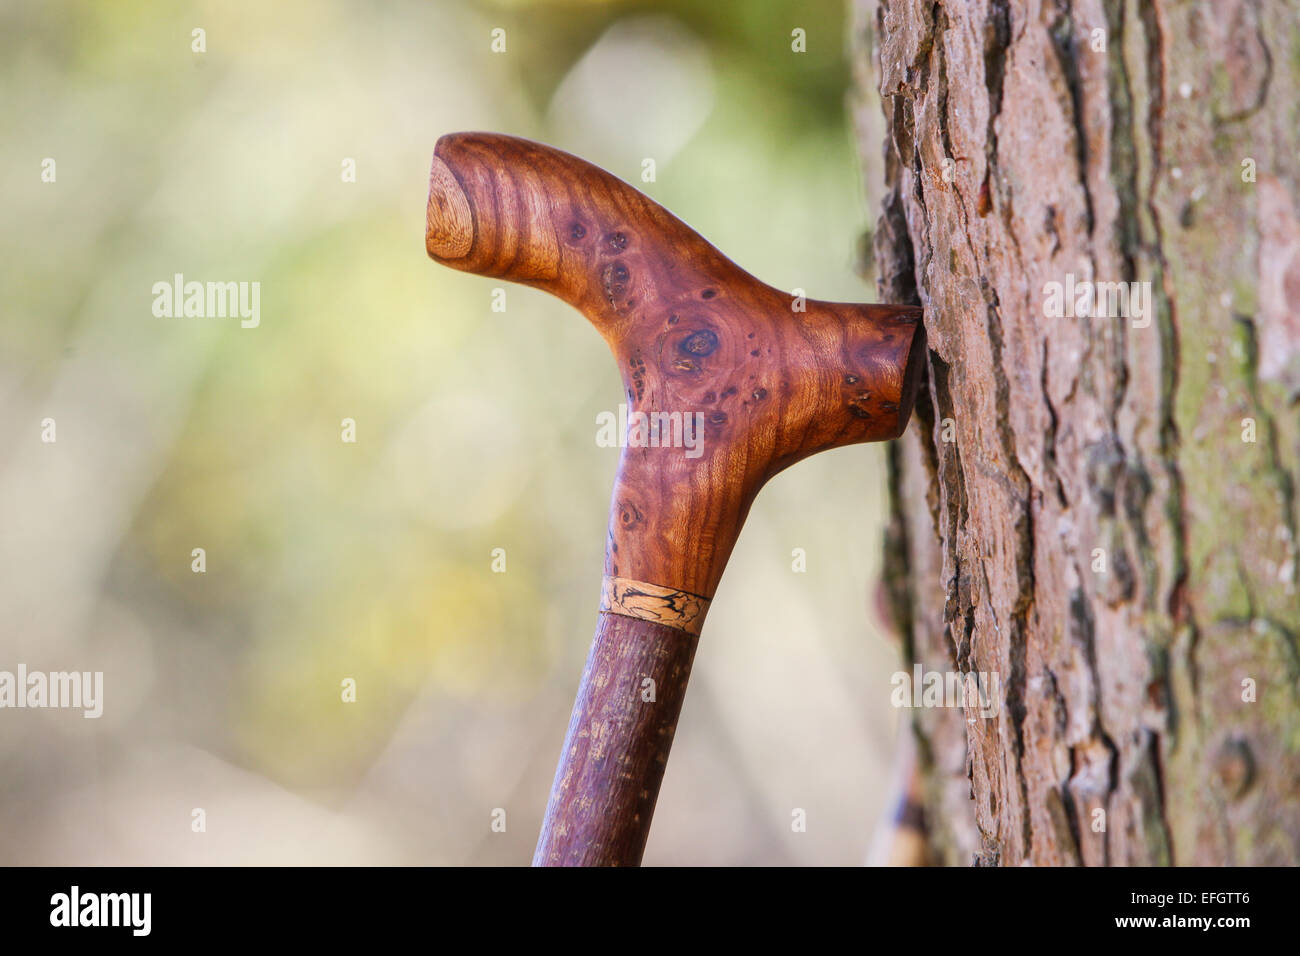 Traditional Handcrafted Walking Stick With Burr Elm Wood Derby